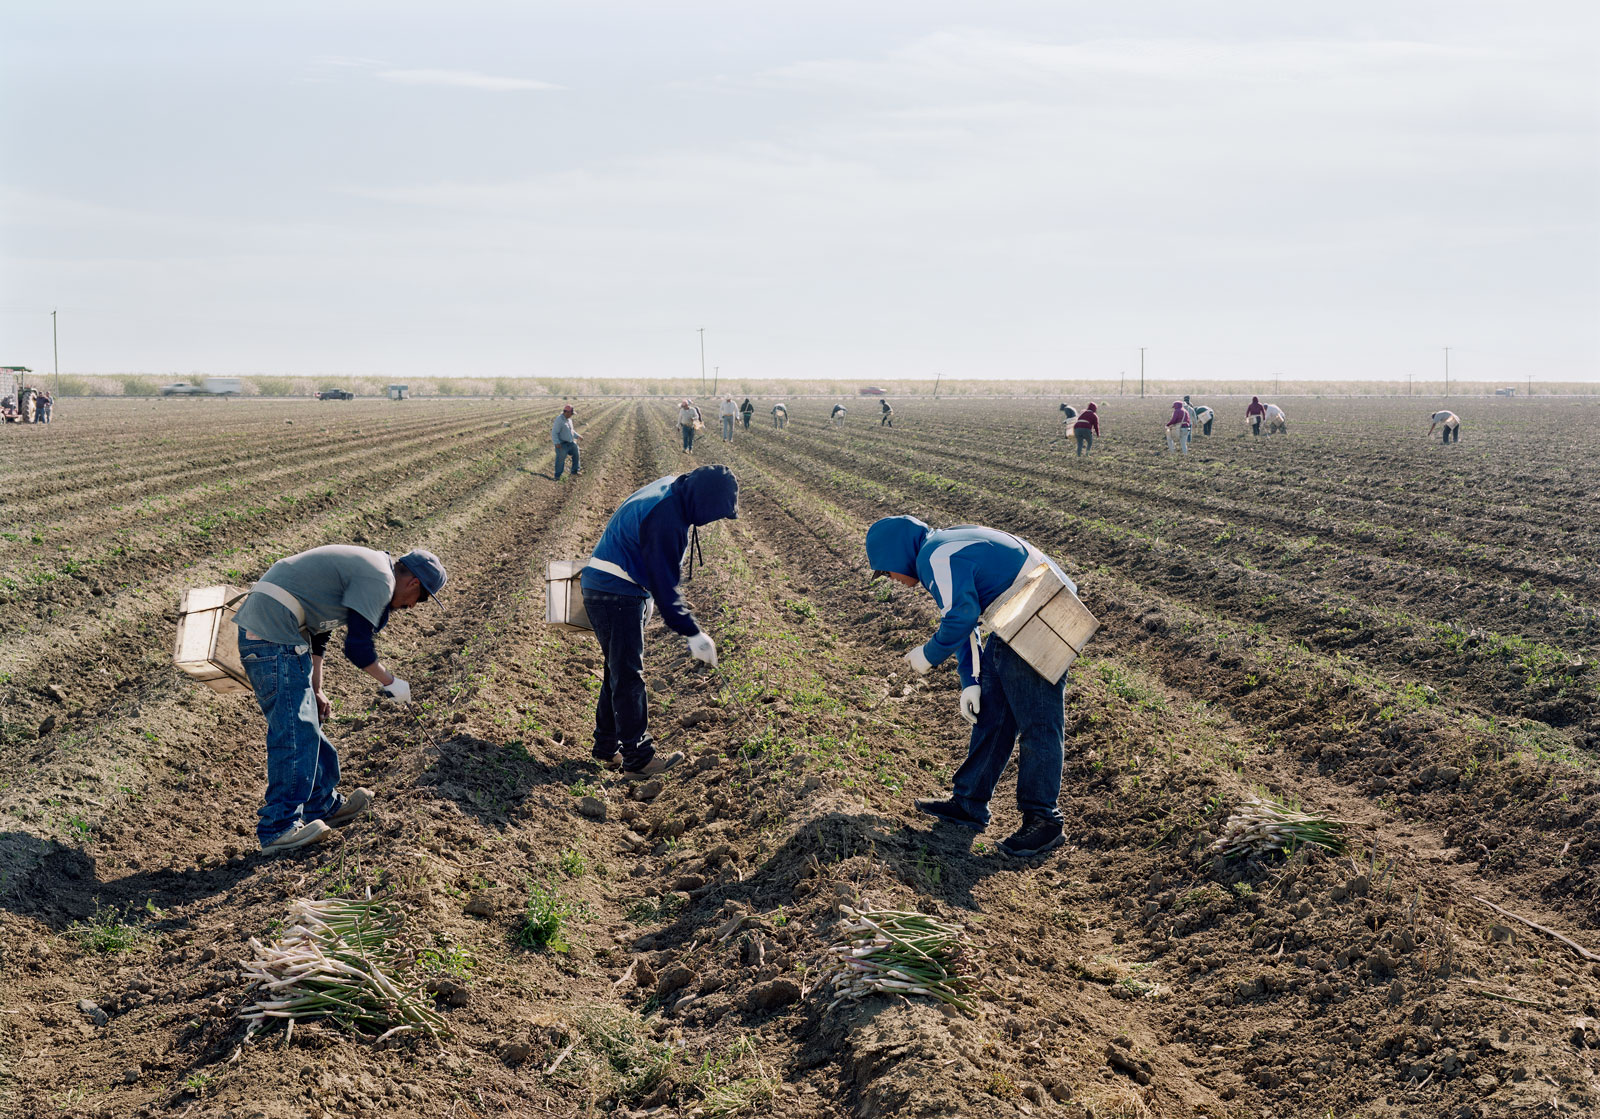 Migrant workers bent down in a field